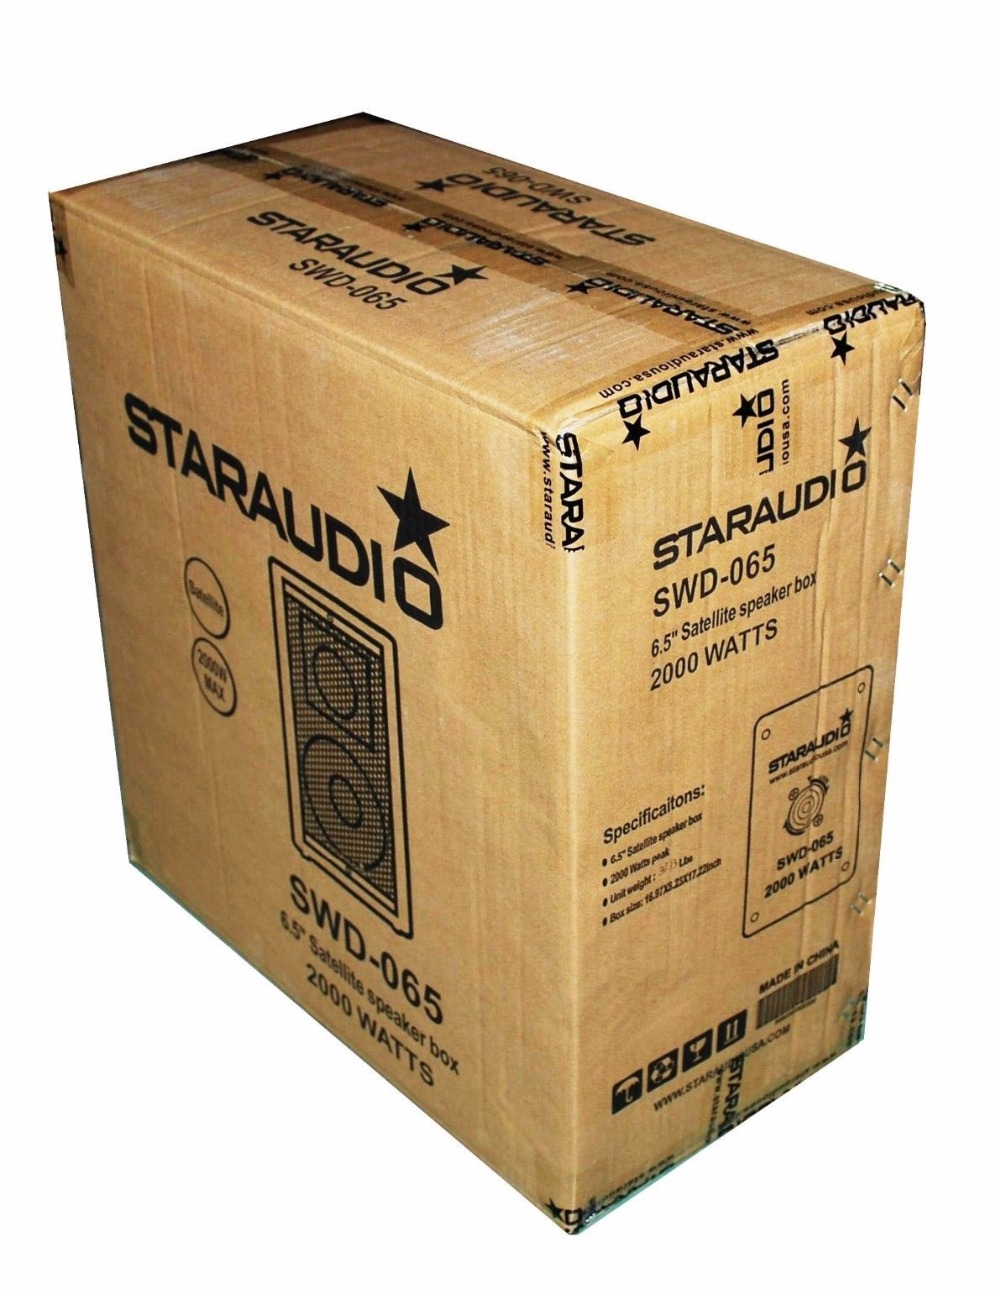 STARAUDIO SWD-065 2 Pcs 2000 W 6.5″ Club DJ Stage Wooden Speakers with 4CH Amplifier Audio Powered Mixer 2 Cables 2 Stands